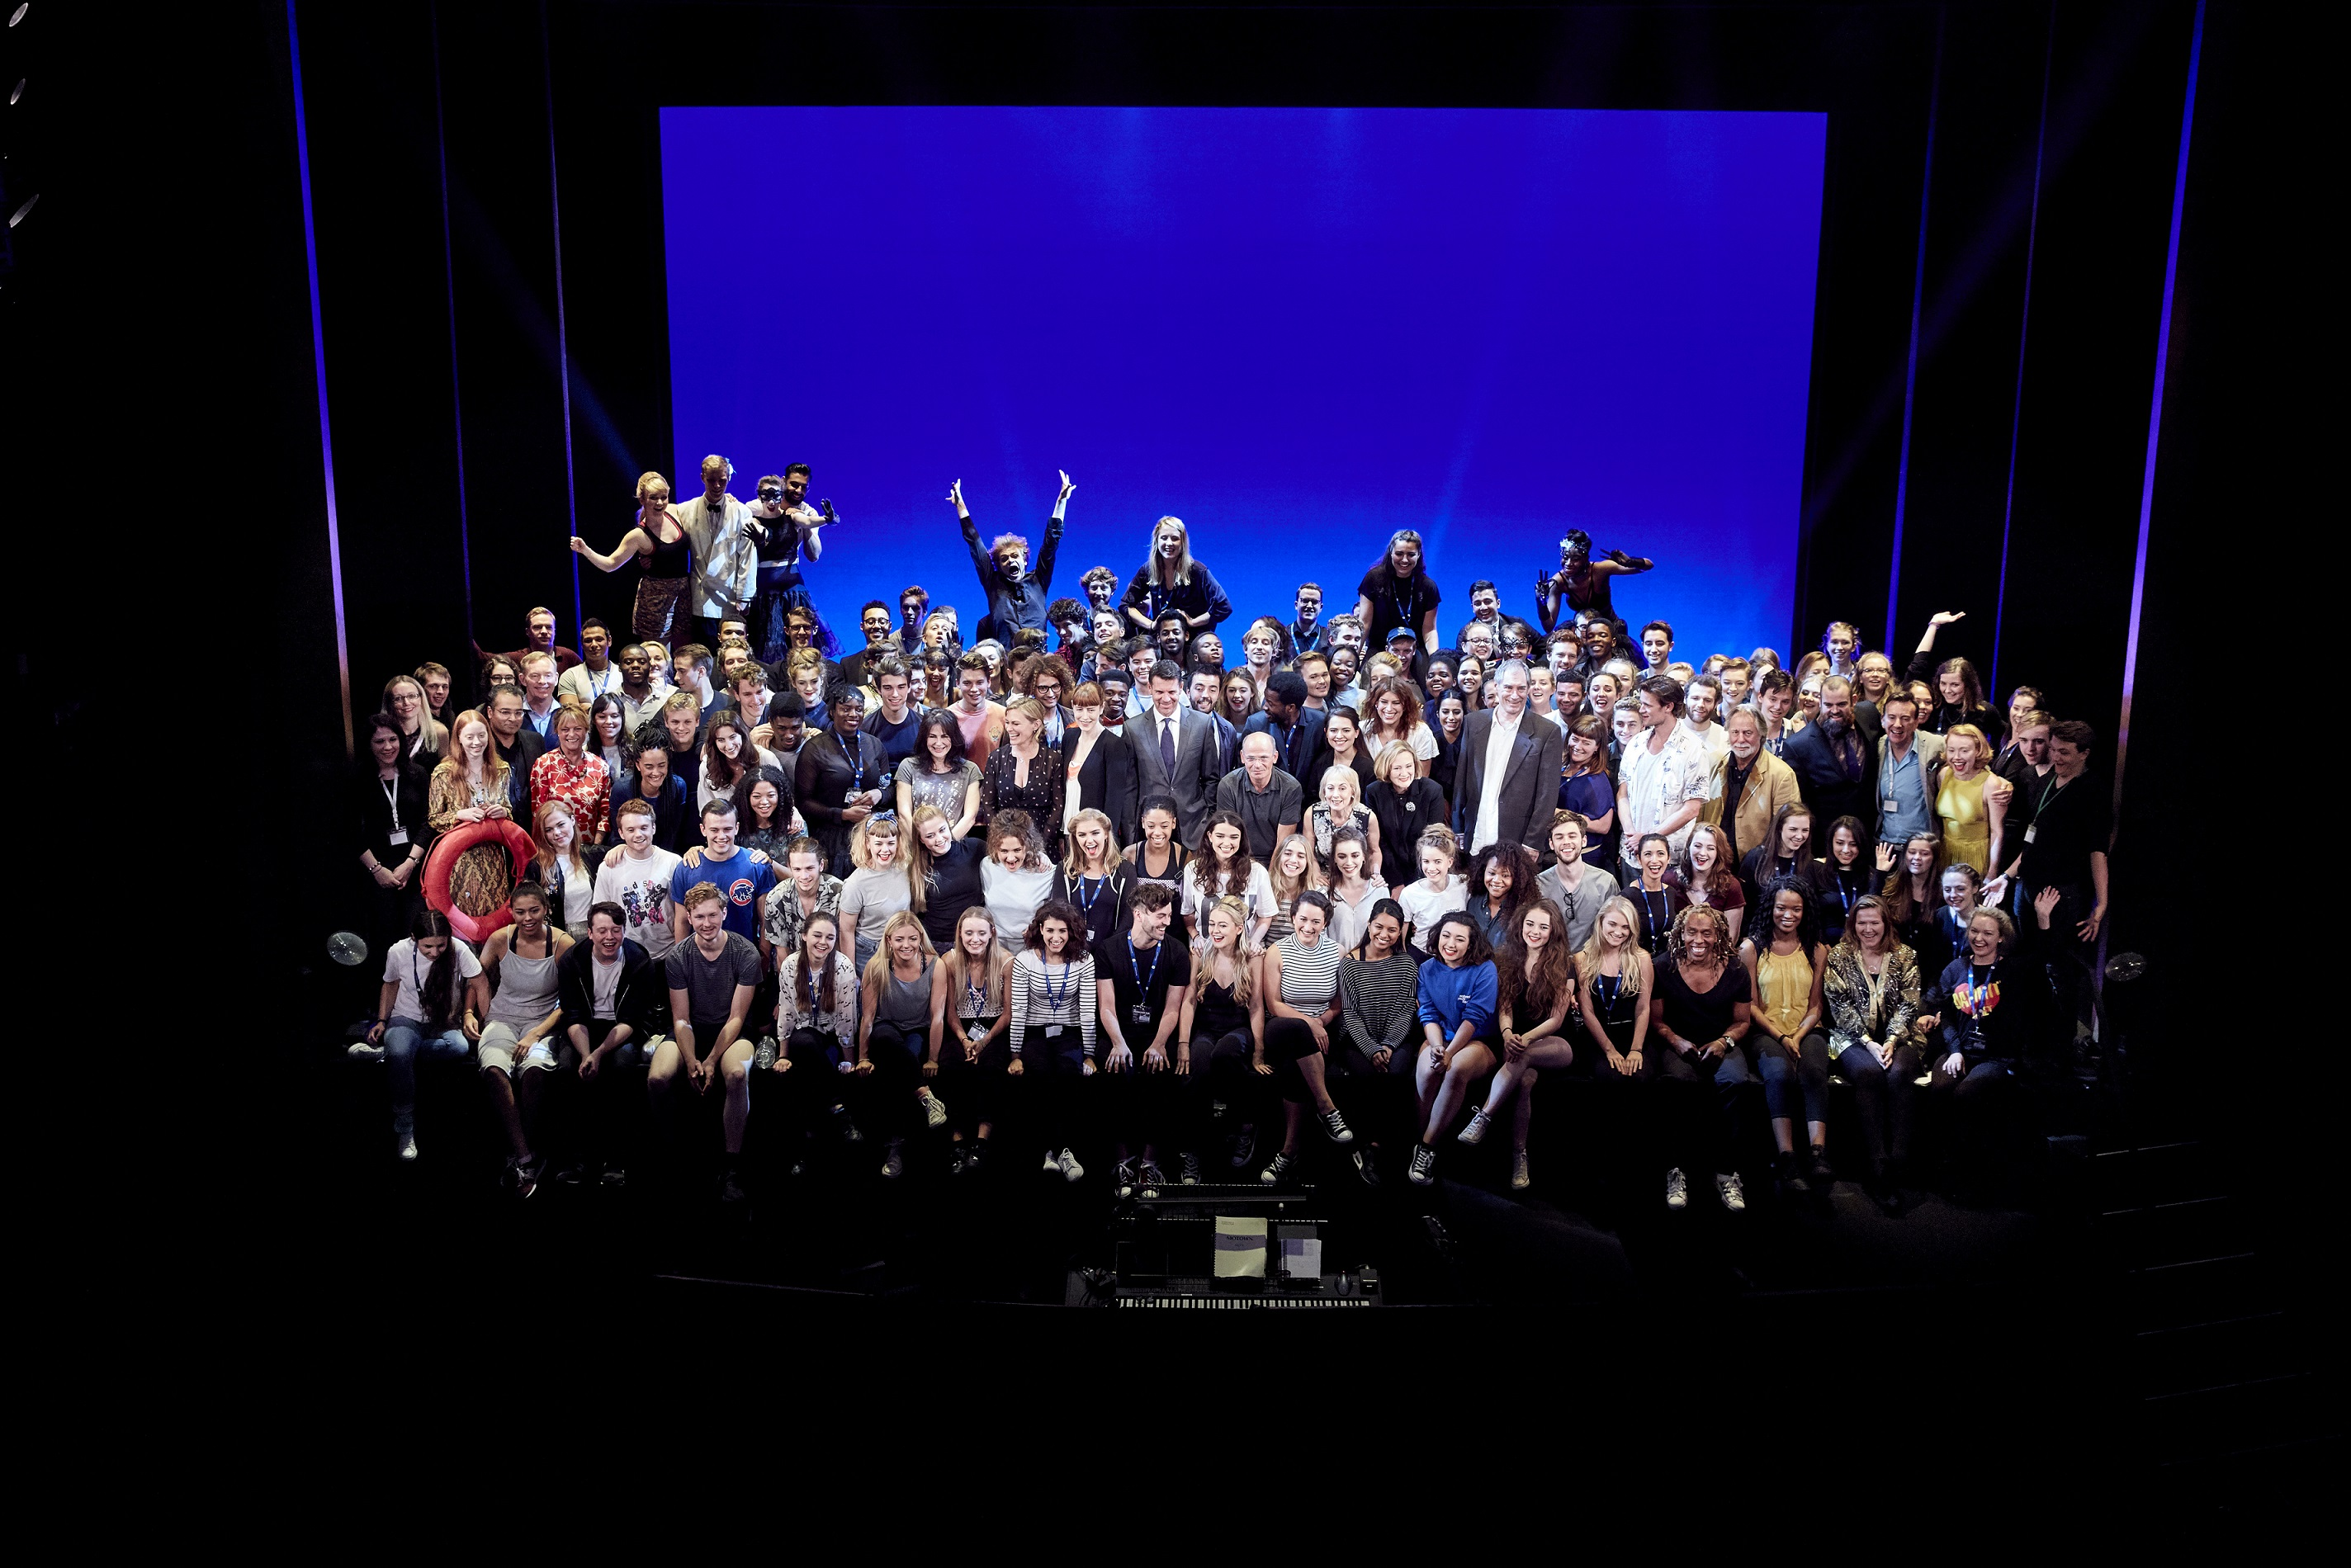 National Youth Theatre 60th Anniversary at The Shaftesbury Theatre.